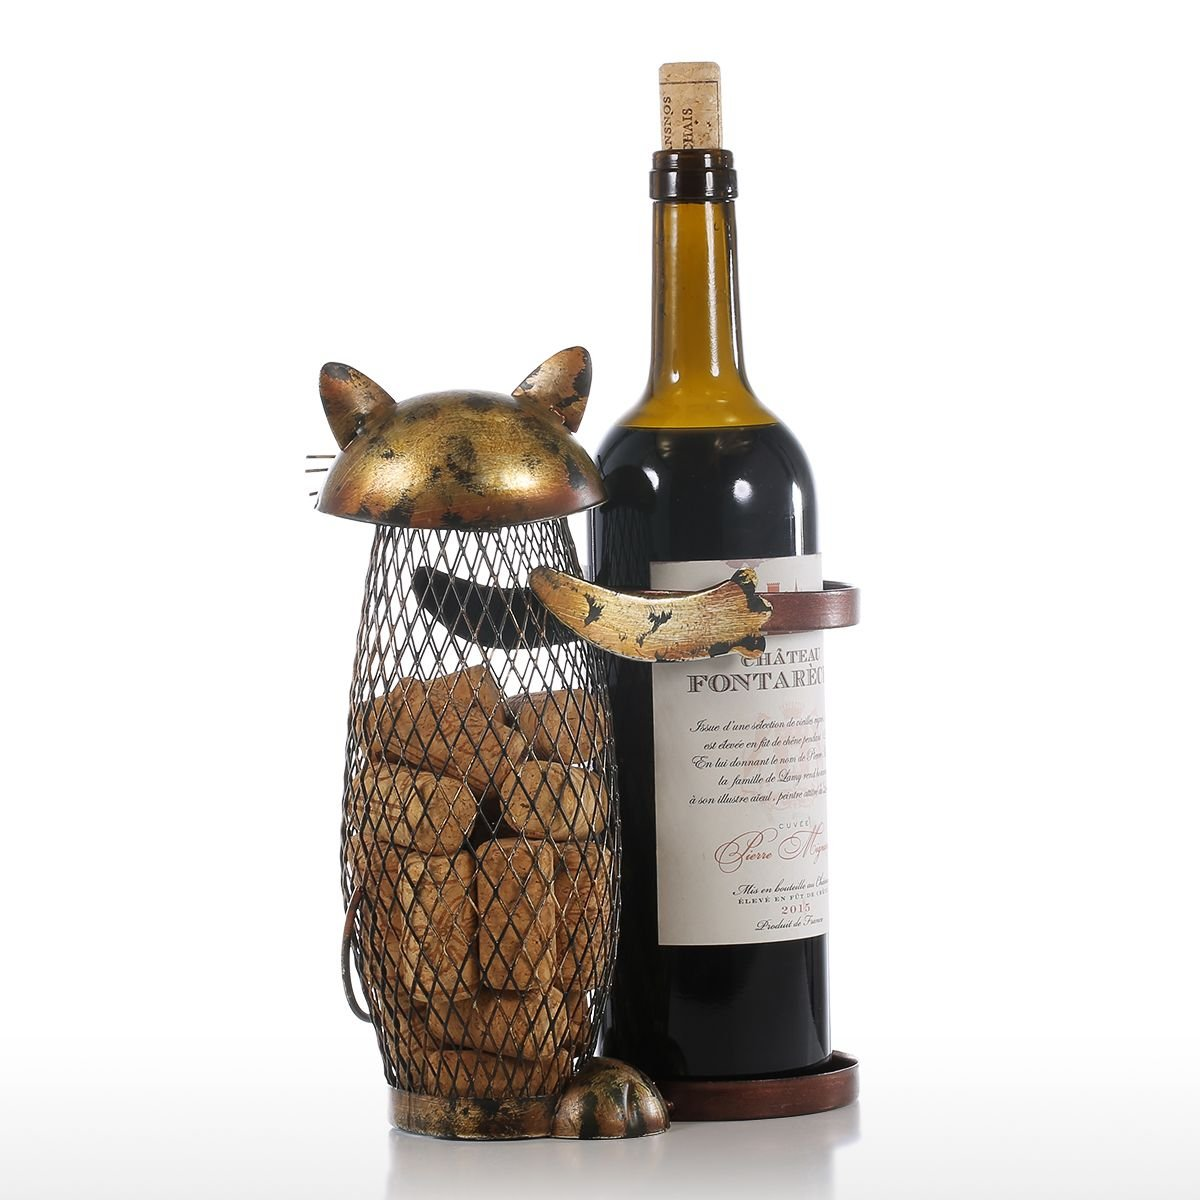 Tooarts Cat Wine Holder Cork Metal Wine Barrel Cork Storage Cage Table Cork Container Ornament by Tooarts (Image #3)